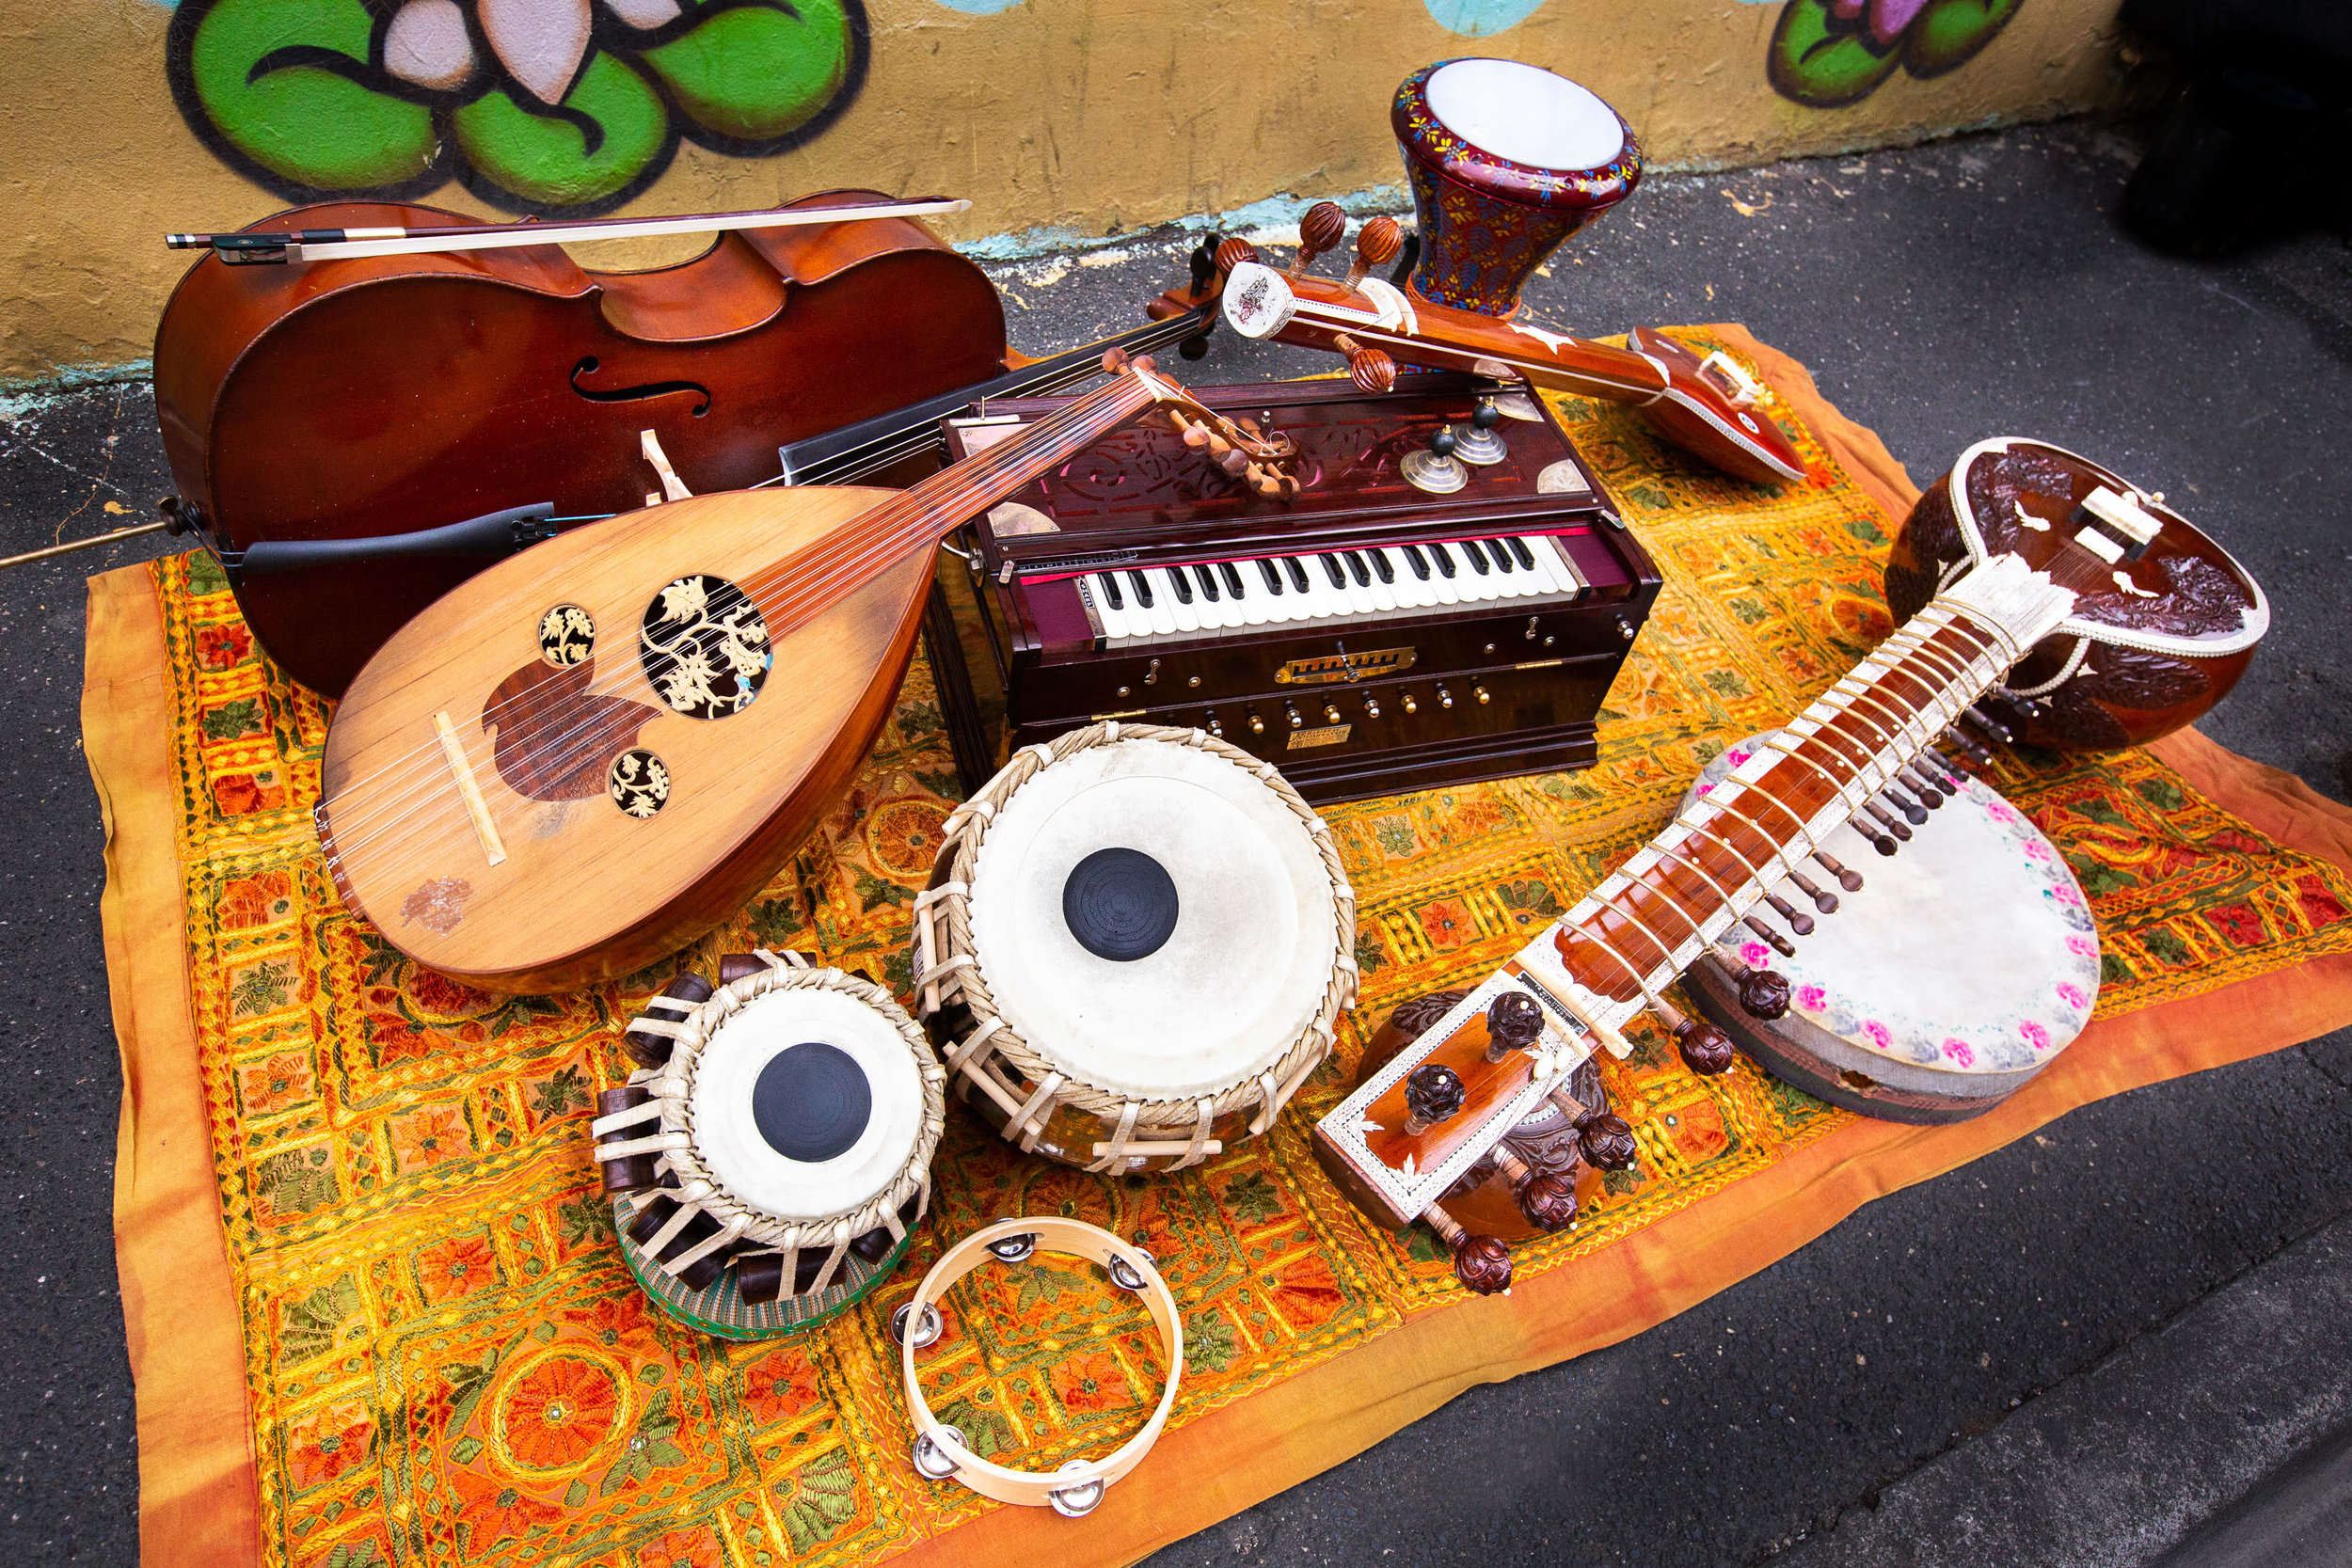 Vedic Vibe instruments include (clockwise from left): Cello, oud, harmonium, tamboura, derebouka, sitar, frame drum, tablas and tambourine. photographer: peter casamento.